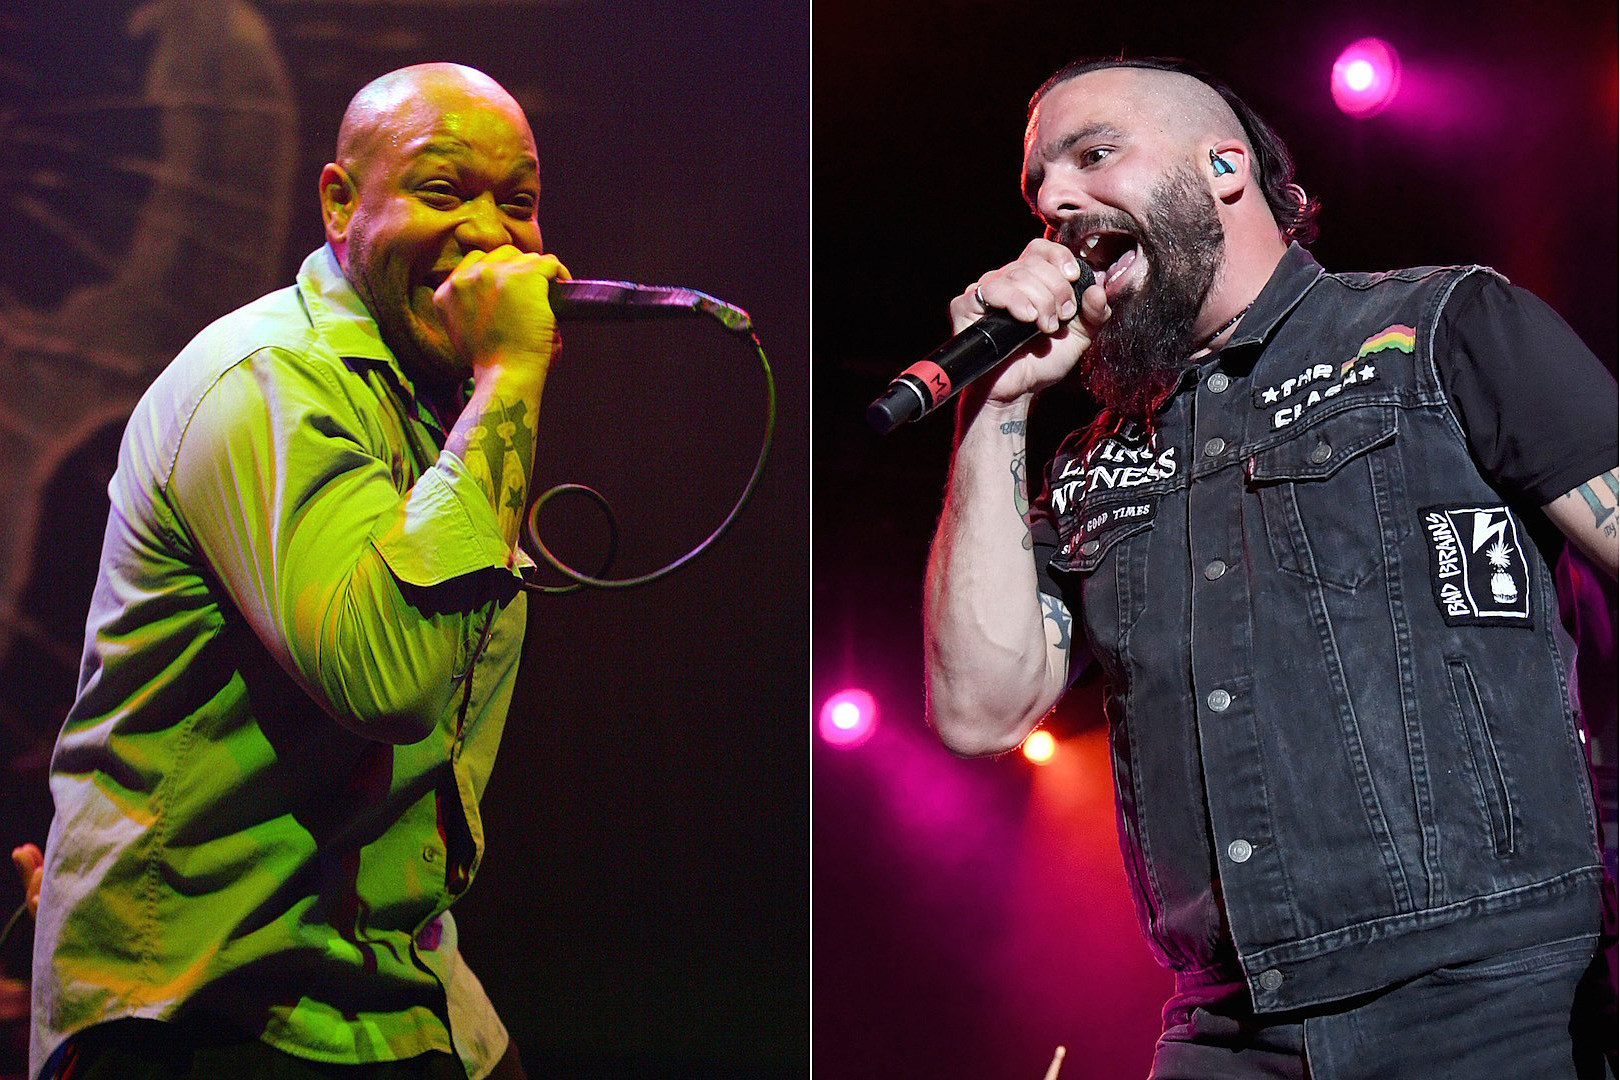 Howard jones joins killswitch engage members in studio m4hsunfo